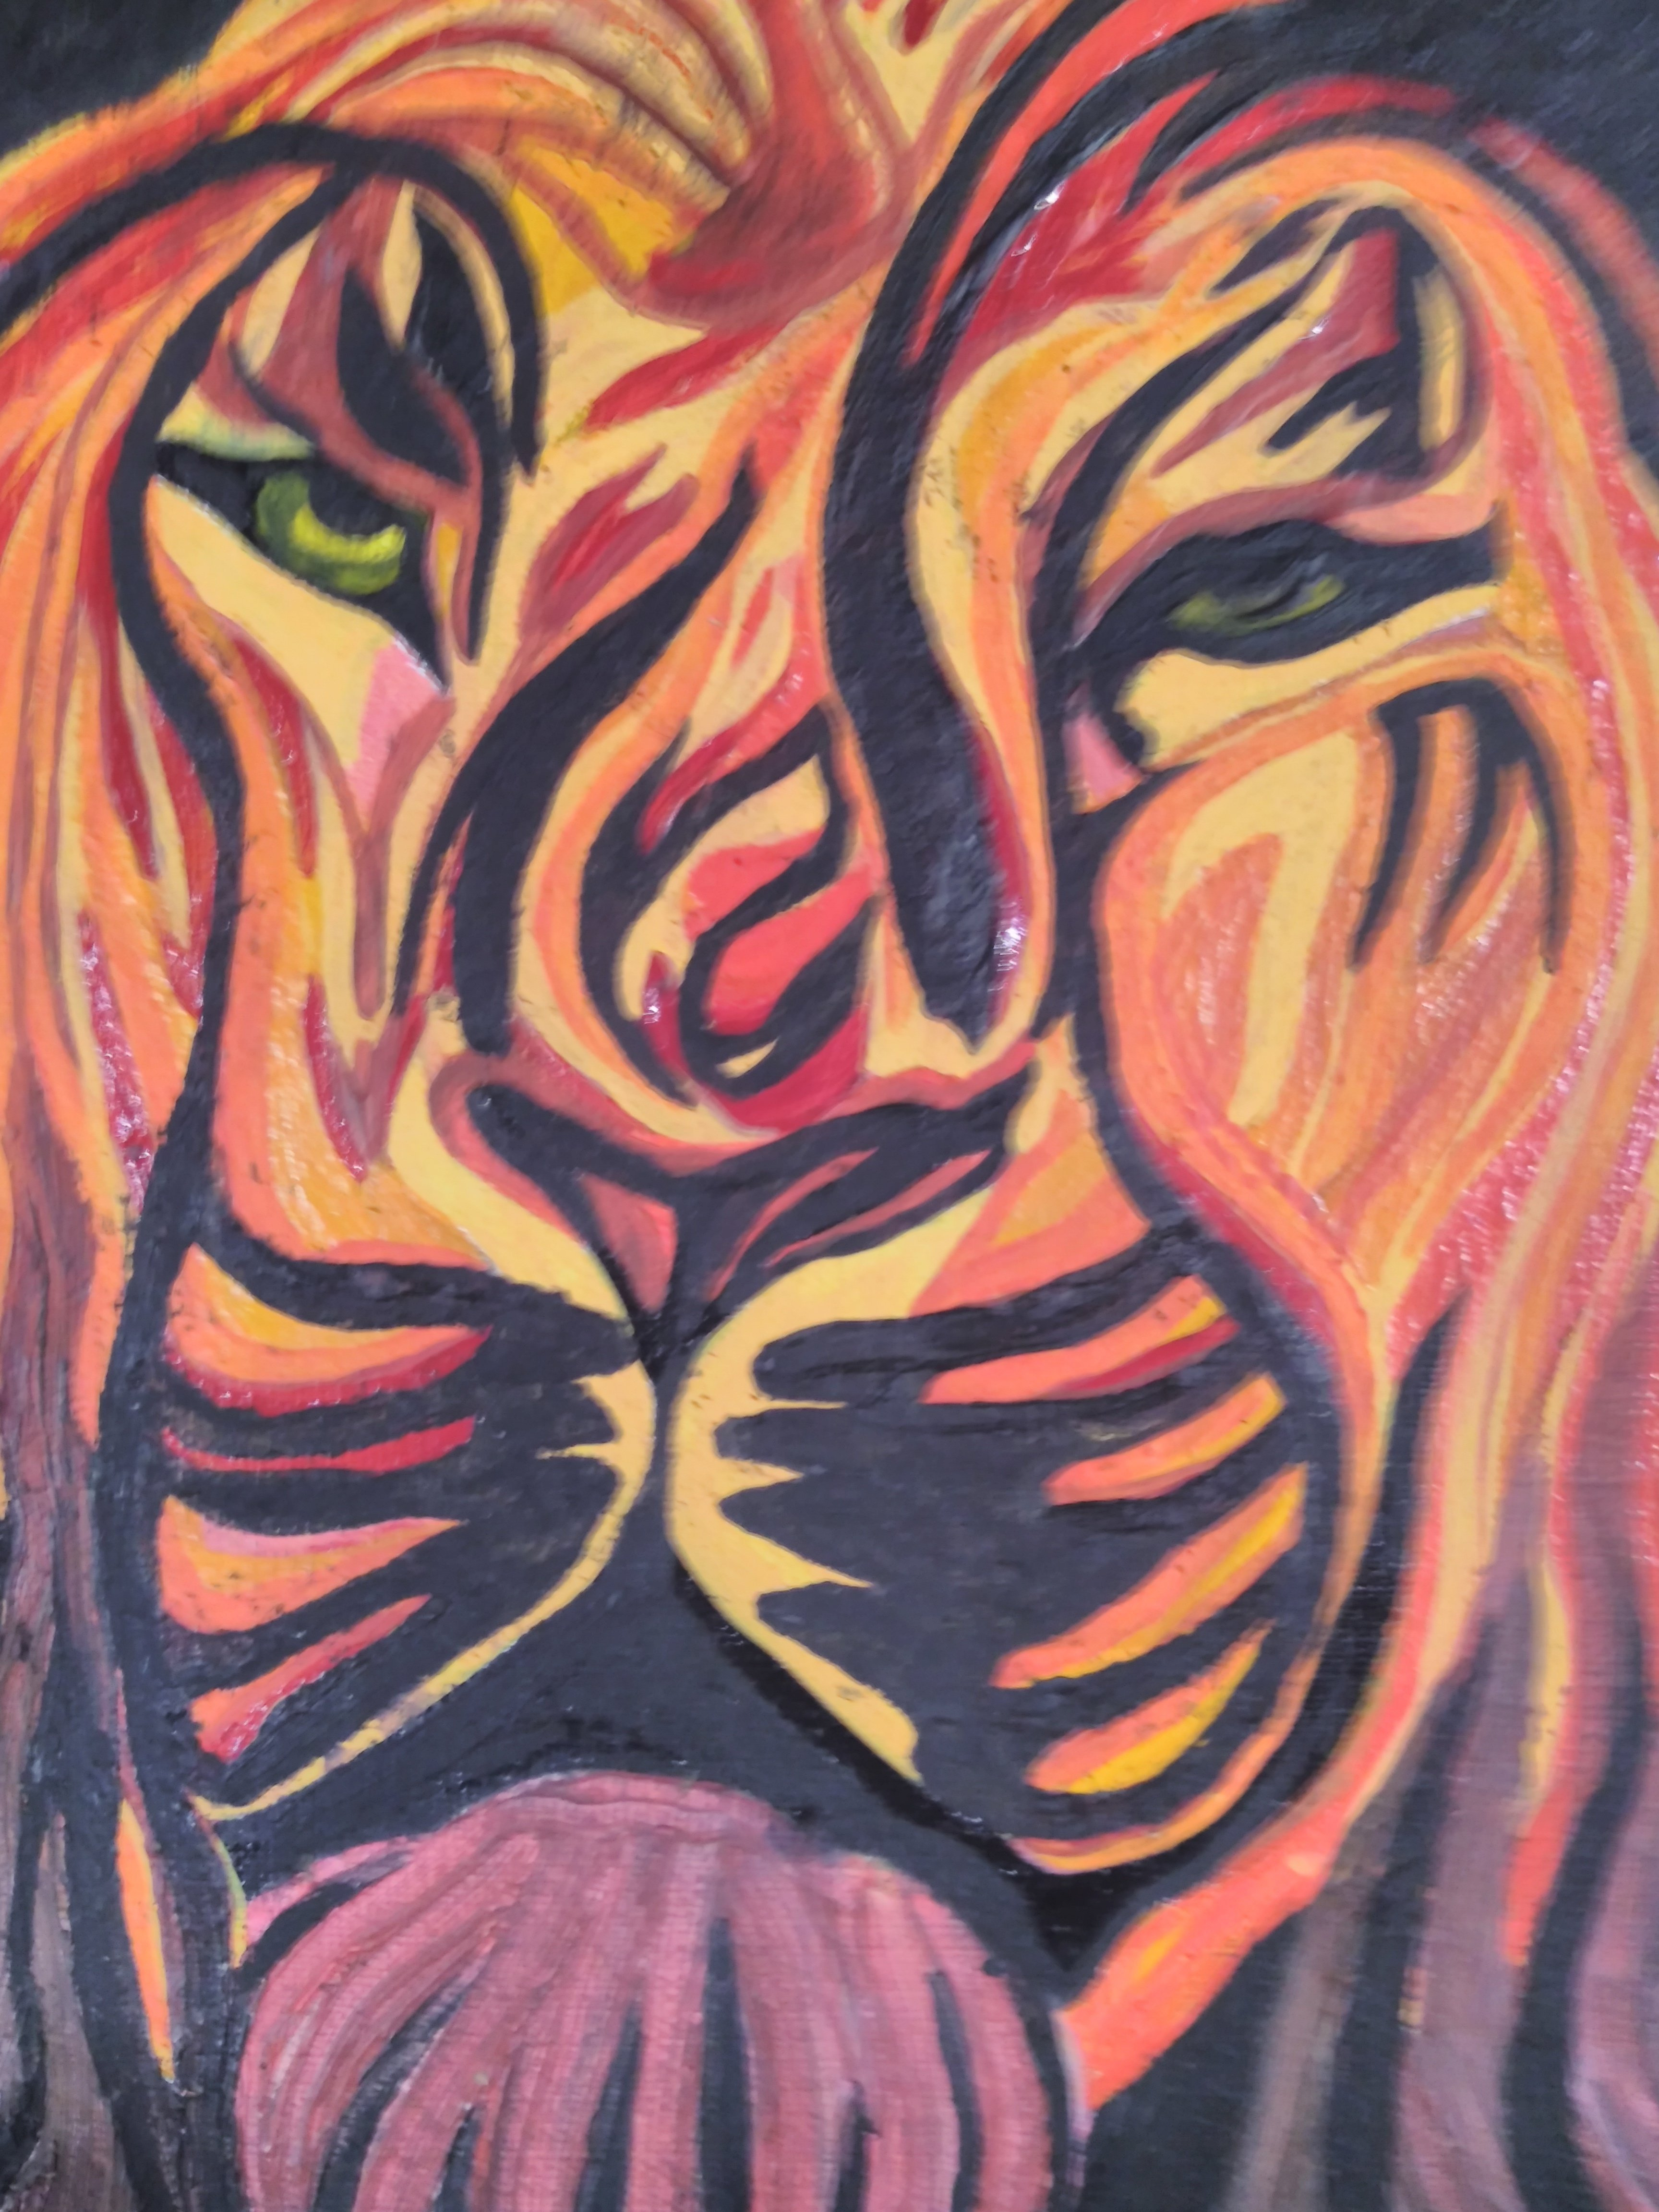 Bryan Davis: '30 shades of lion', 2019 Other Painting, Cats. I started with the idea of drawing a lion face.  It was so much fun painting it that I did not want to stop and kept adding more colors to the point that I had this lion with so many shades.  I had to paint it again on canvas using ...